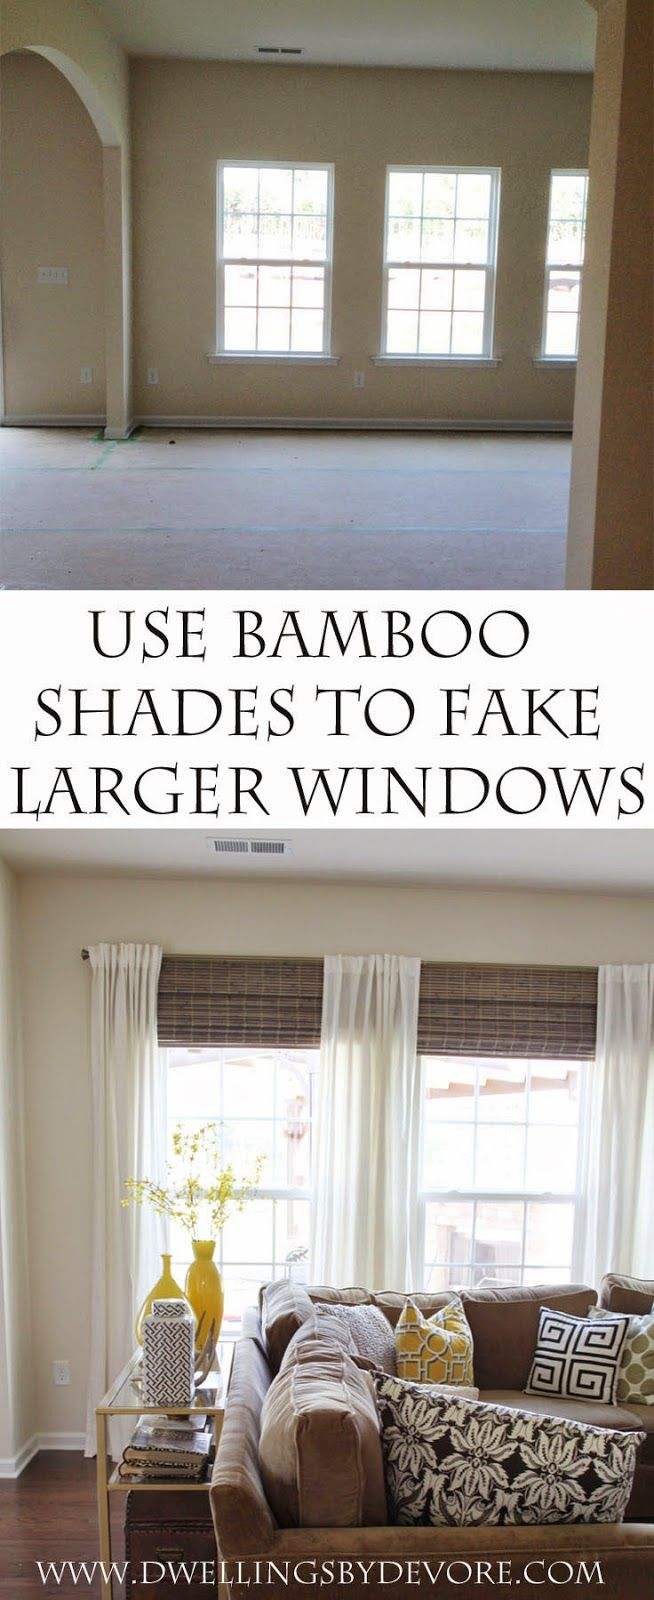 Basement window treatments ideas - Dwellings By Devore Bamboo Shades To Make Your Windows Look Larger